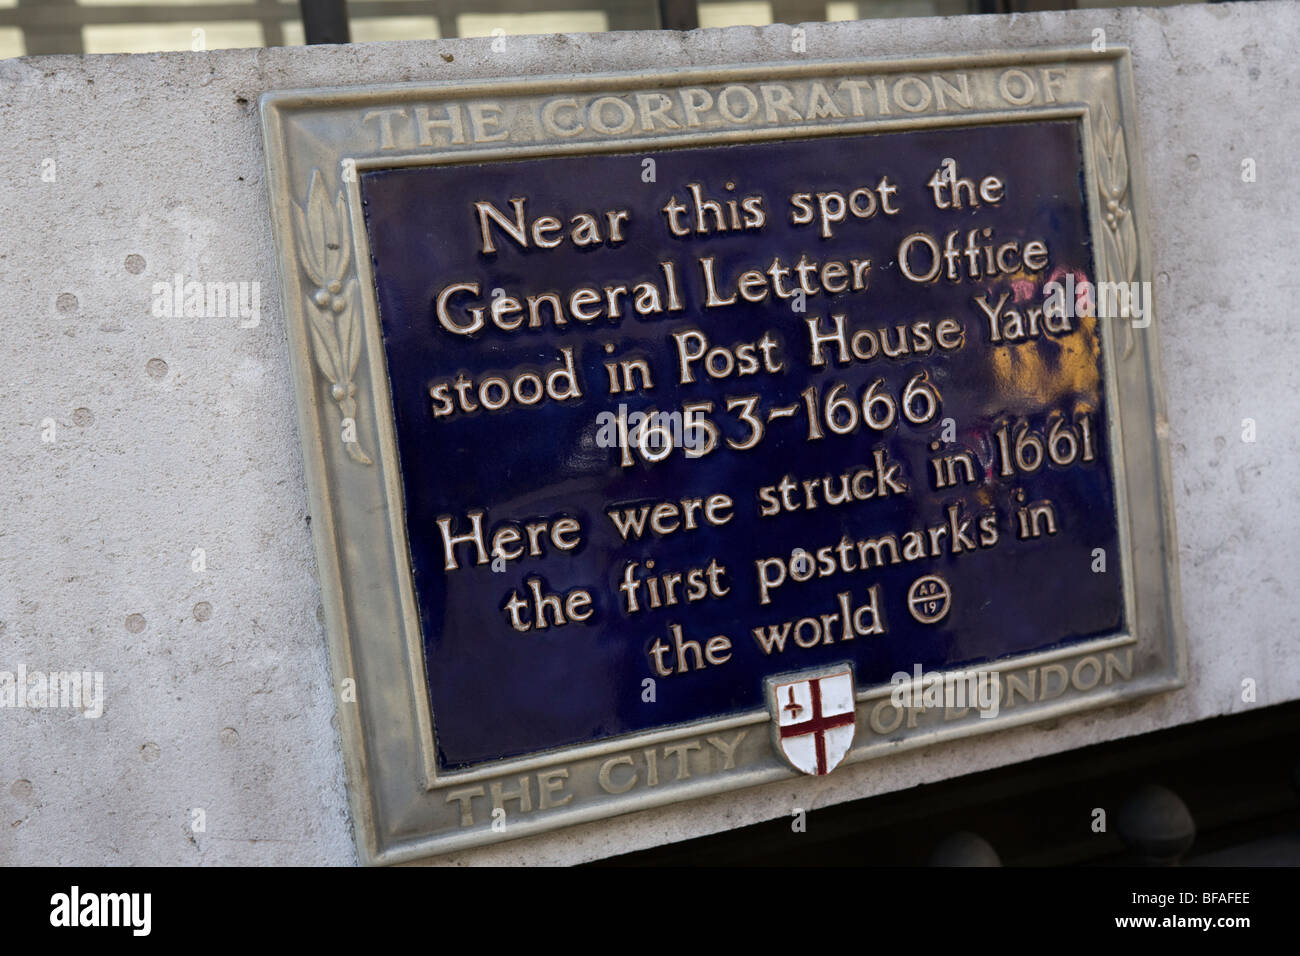 City of London Blue plaque 'General Letter Office' stood in Post House Yard 1653-1666 - Stock Image